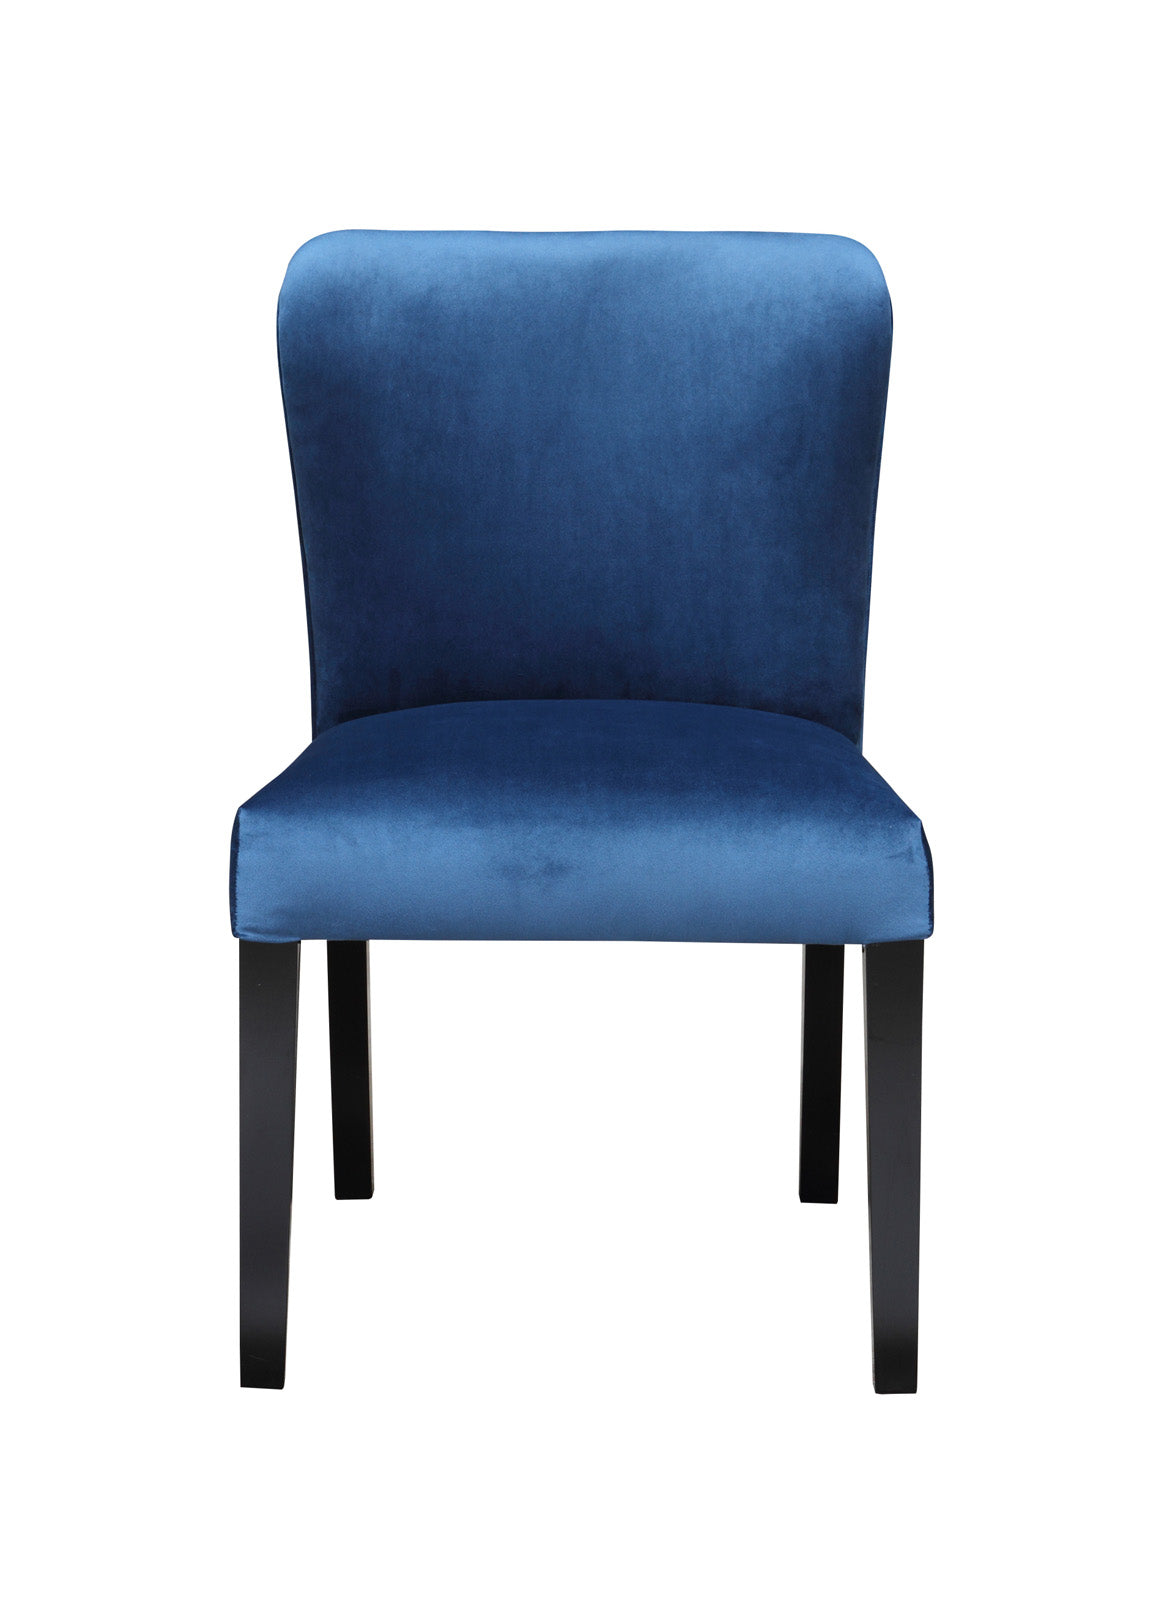 Modern Blue Dining Chairs At Contemporary Furniture Warehouse